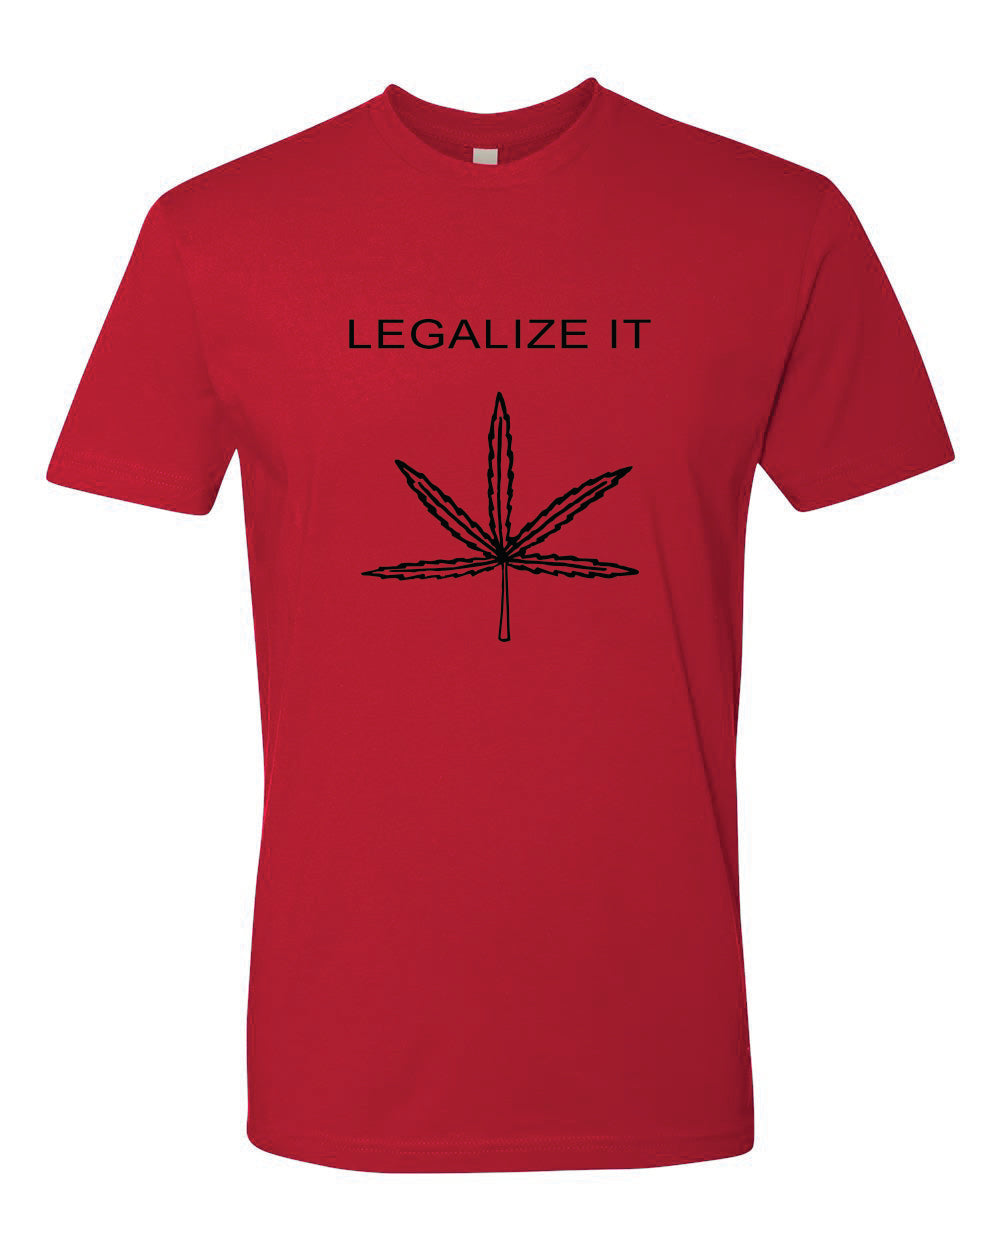 Peter Tosh Legalize It Red Tee